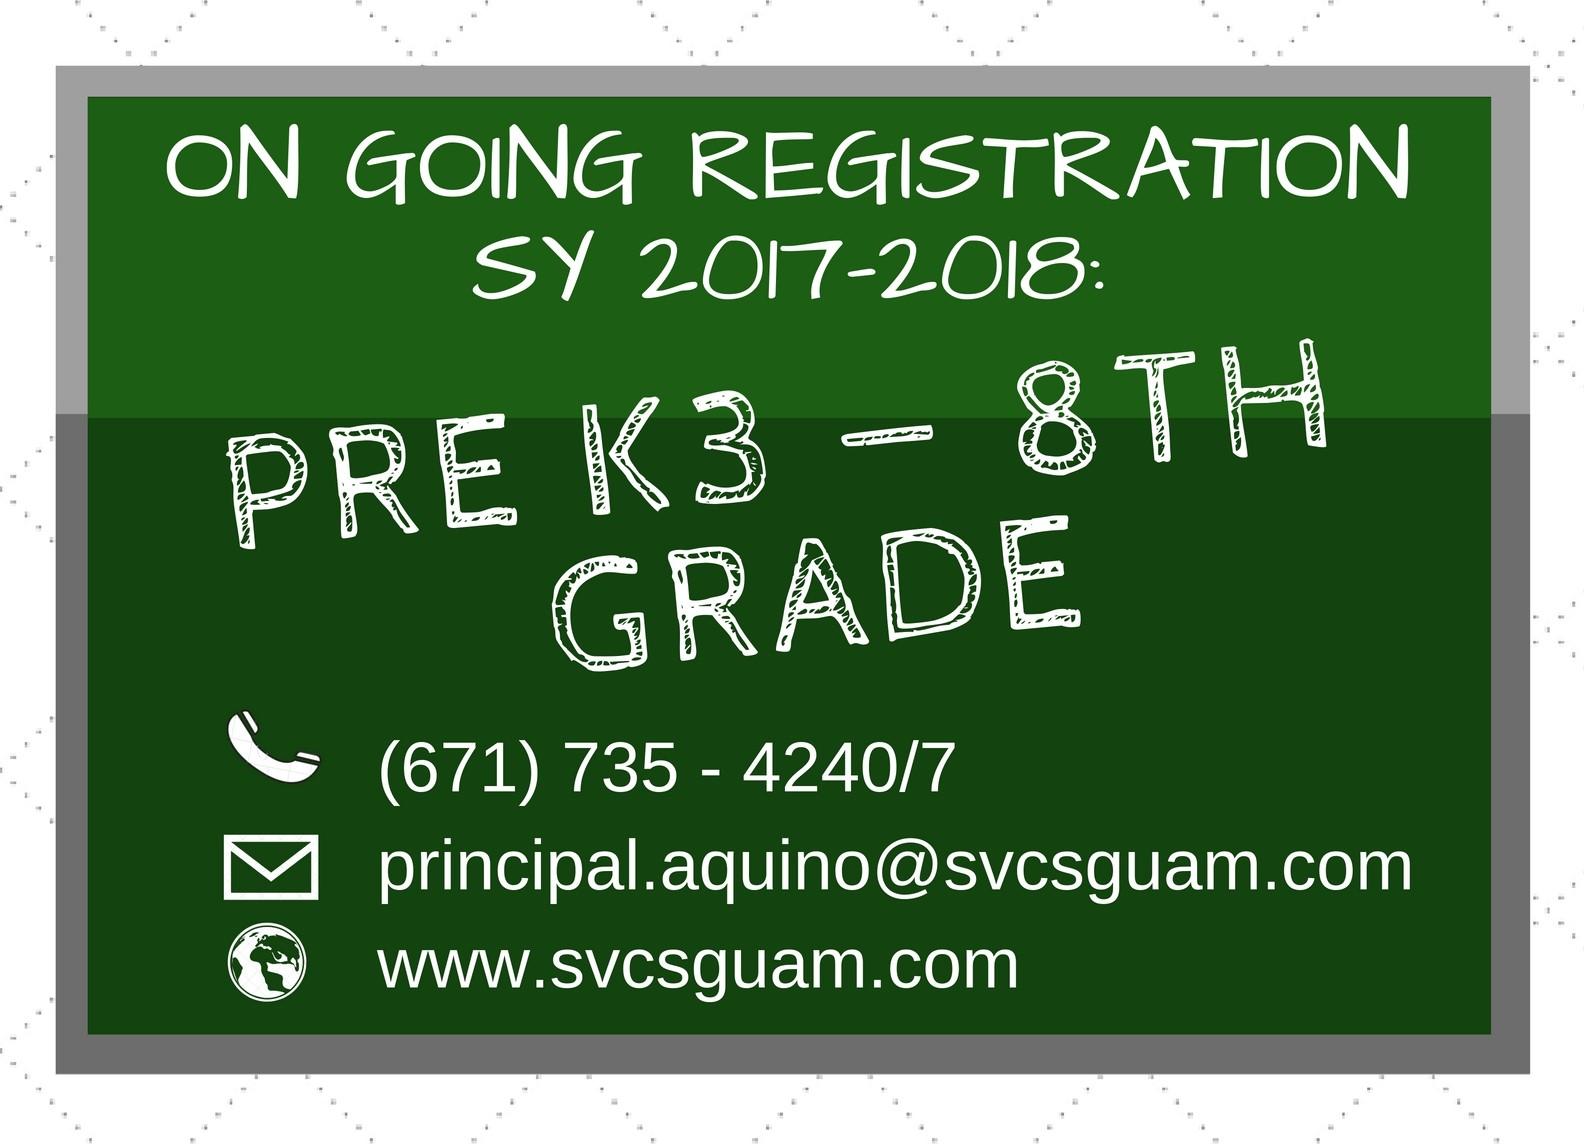 SY 17-18 REGISTRATION